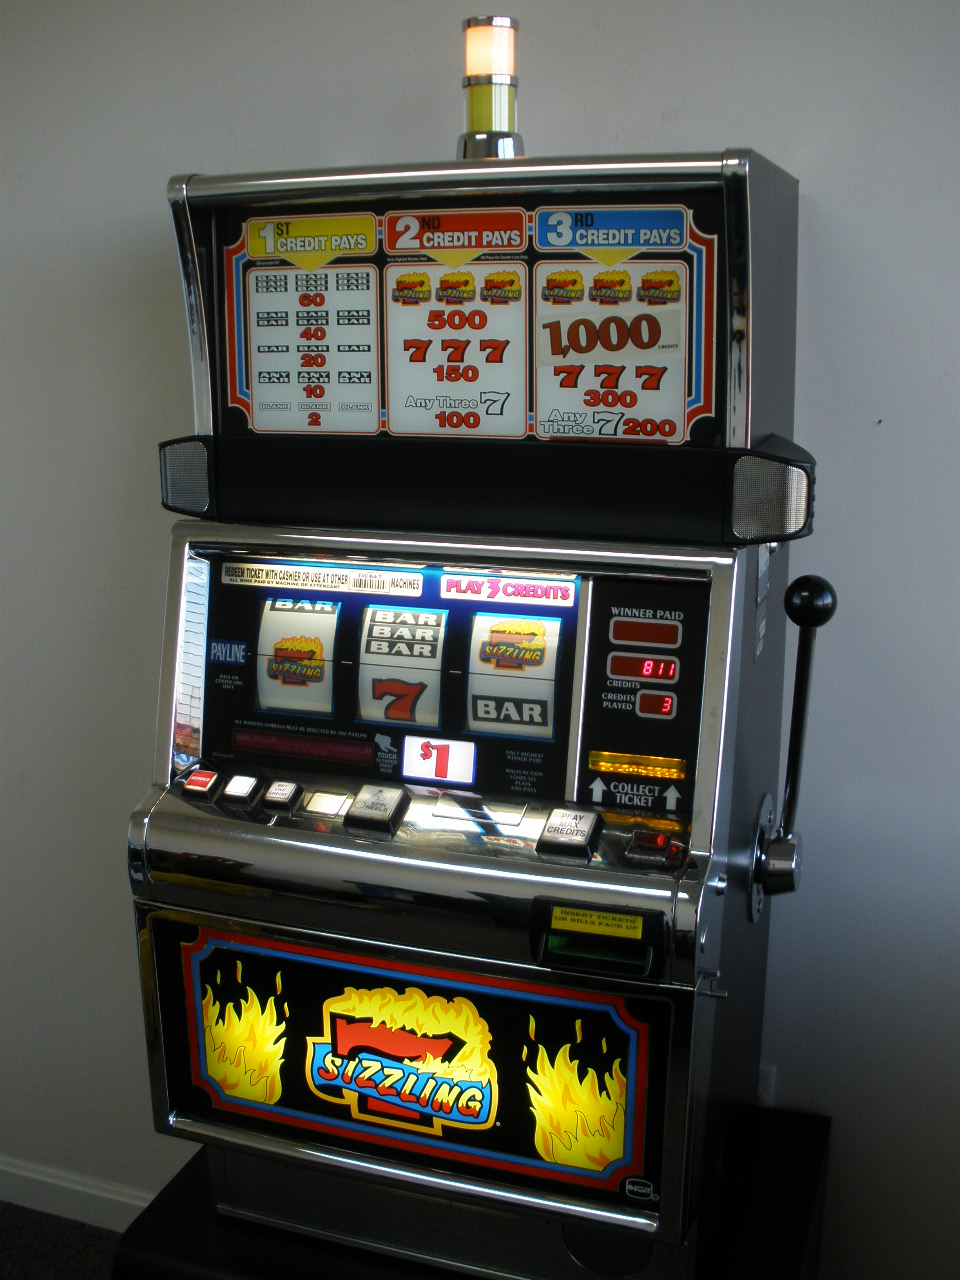 IGT SIZZLING 7s S2000 SLOT MACHINE For Sale • Gambler's